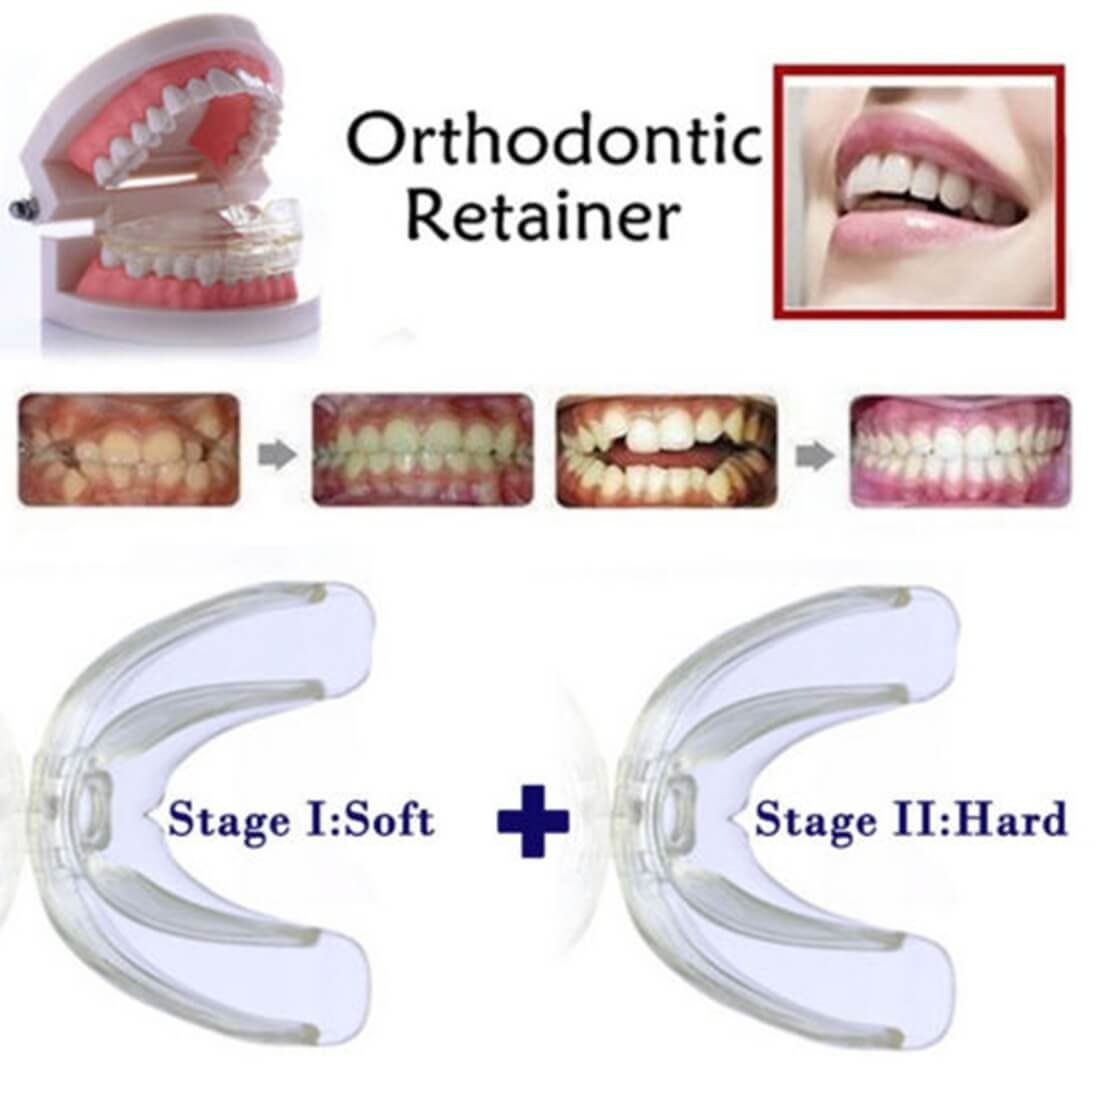 Amazon teeth straightening orthodontic retainer braces smile high tech dental orthodontic braces transparent soft and hard for adults teeth straightening solutioingenieria Image collections